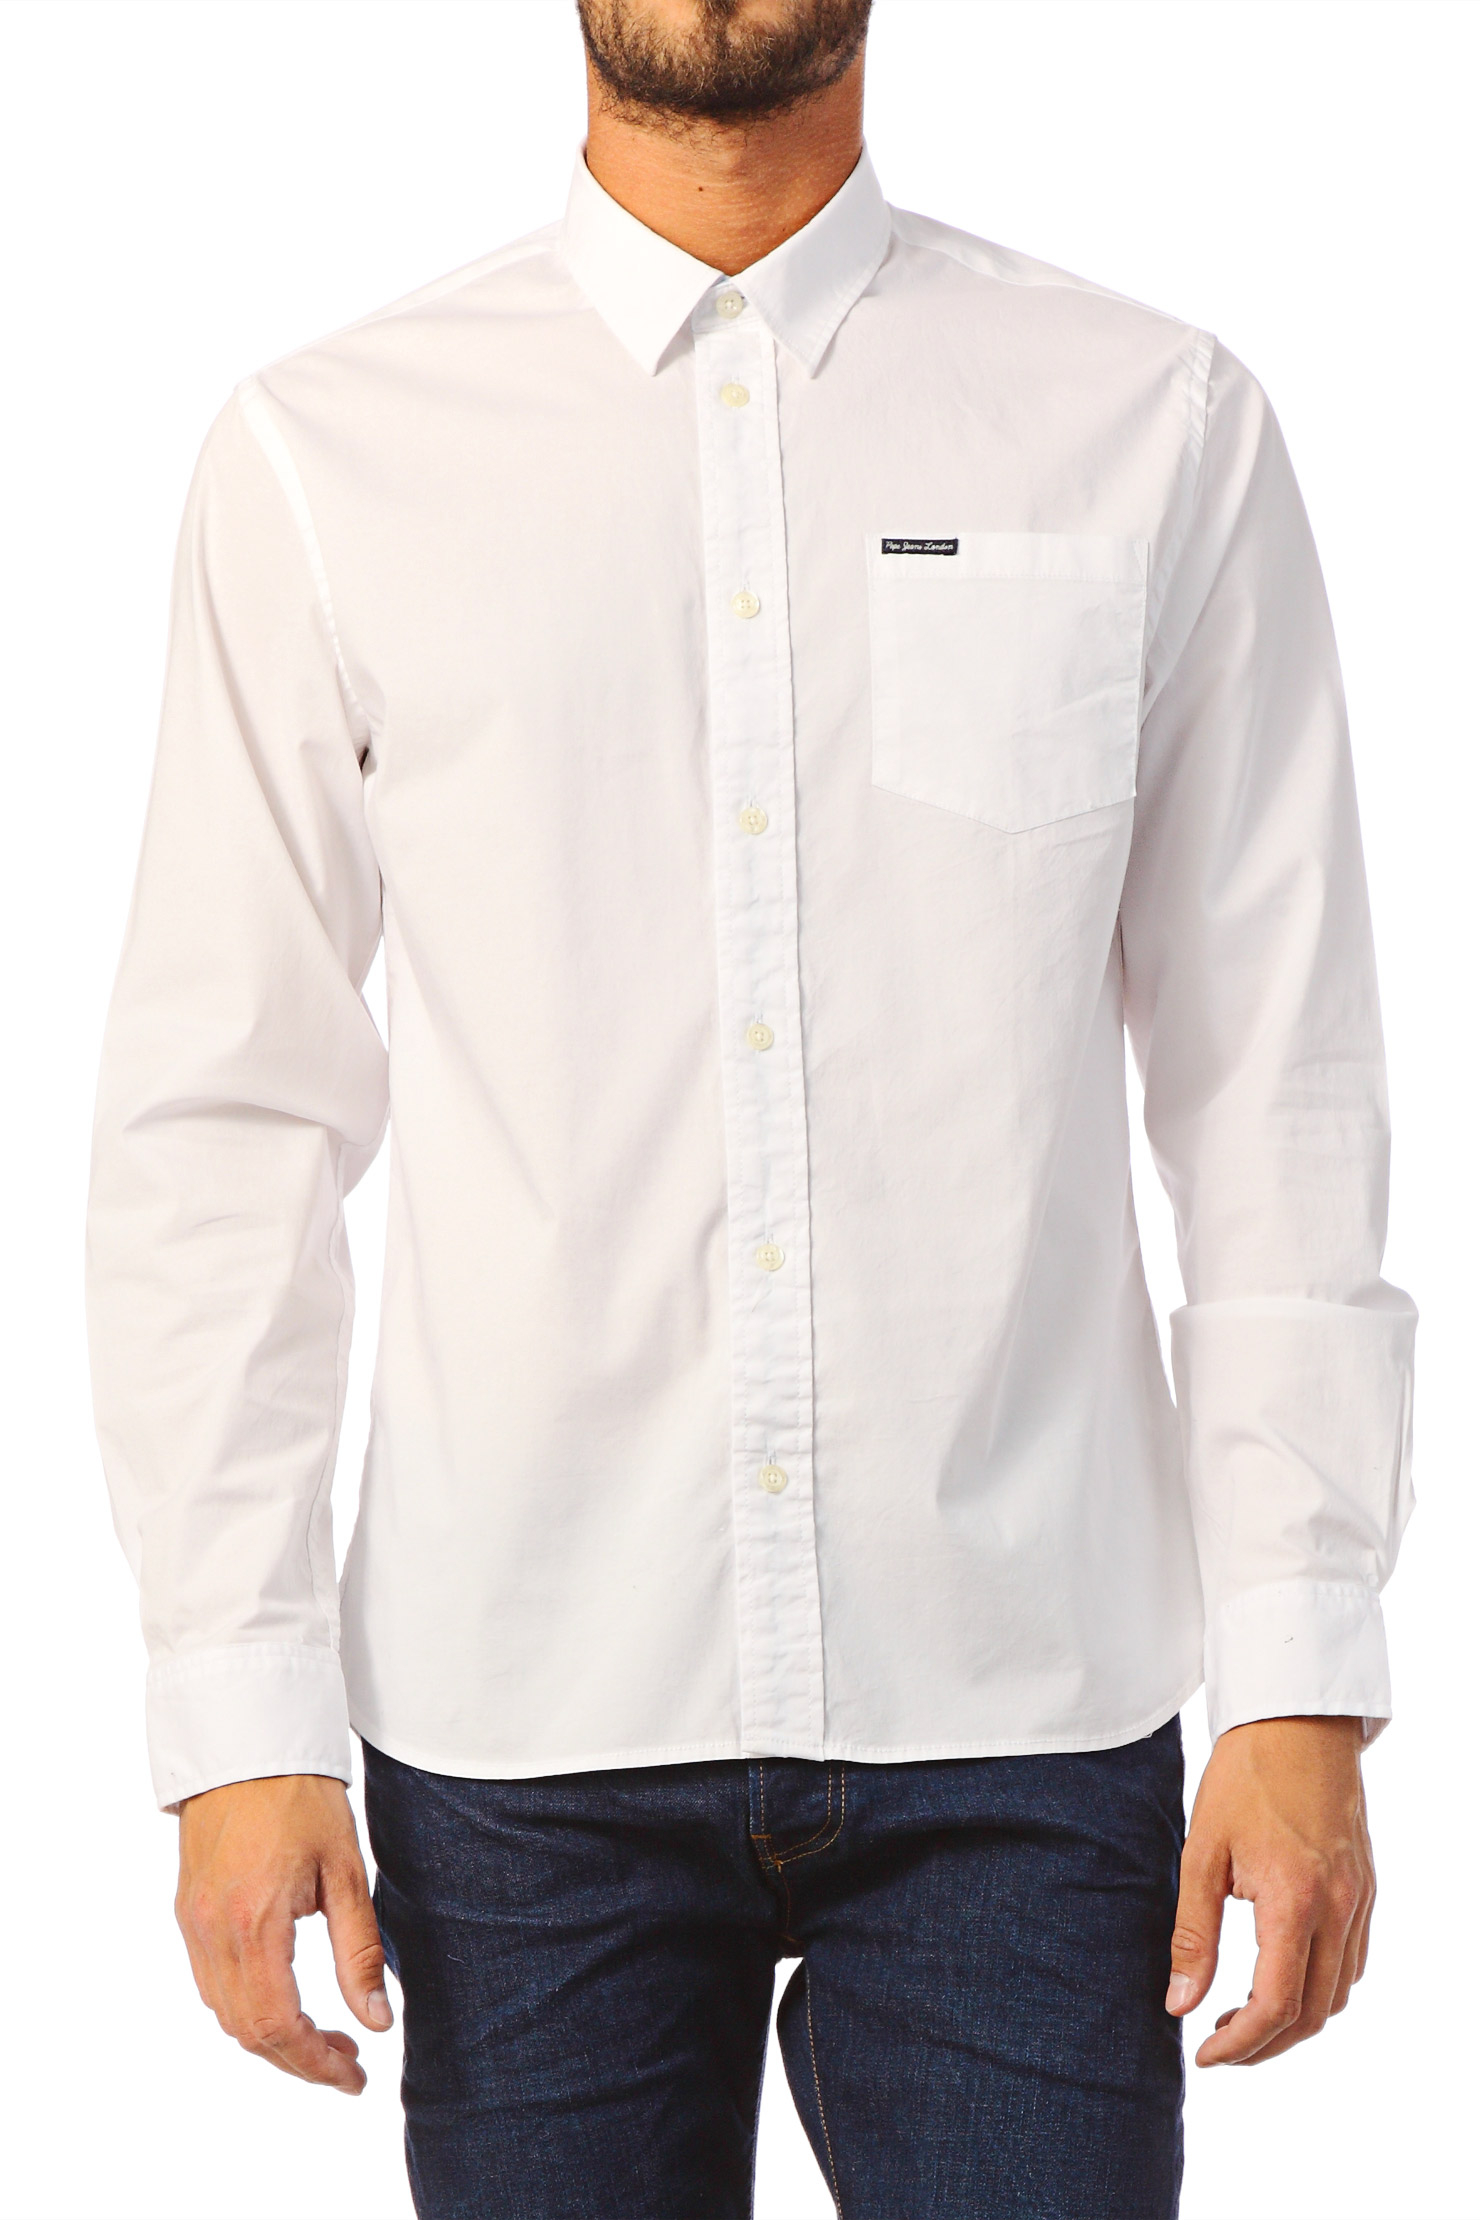 Pepe jeans long sleeve shirt in white for men lyst for White pants denim shirt